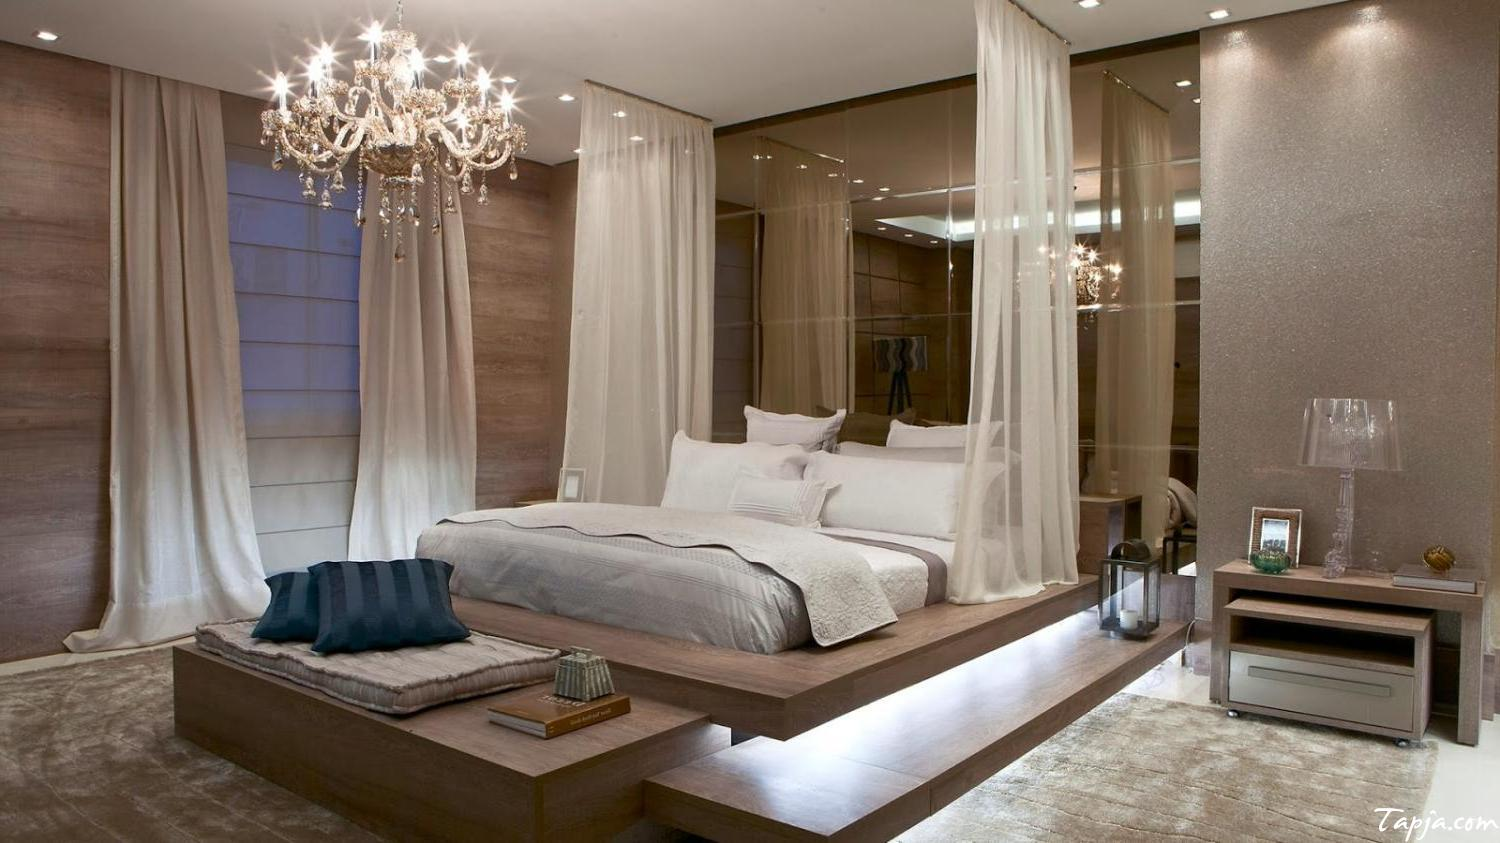 16 Fascinating Bedrooms With Extravagant Chandeliers